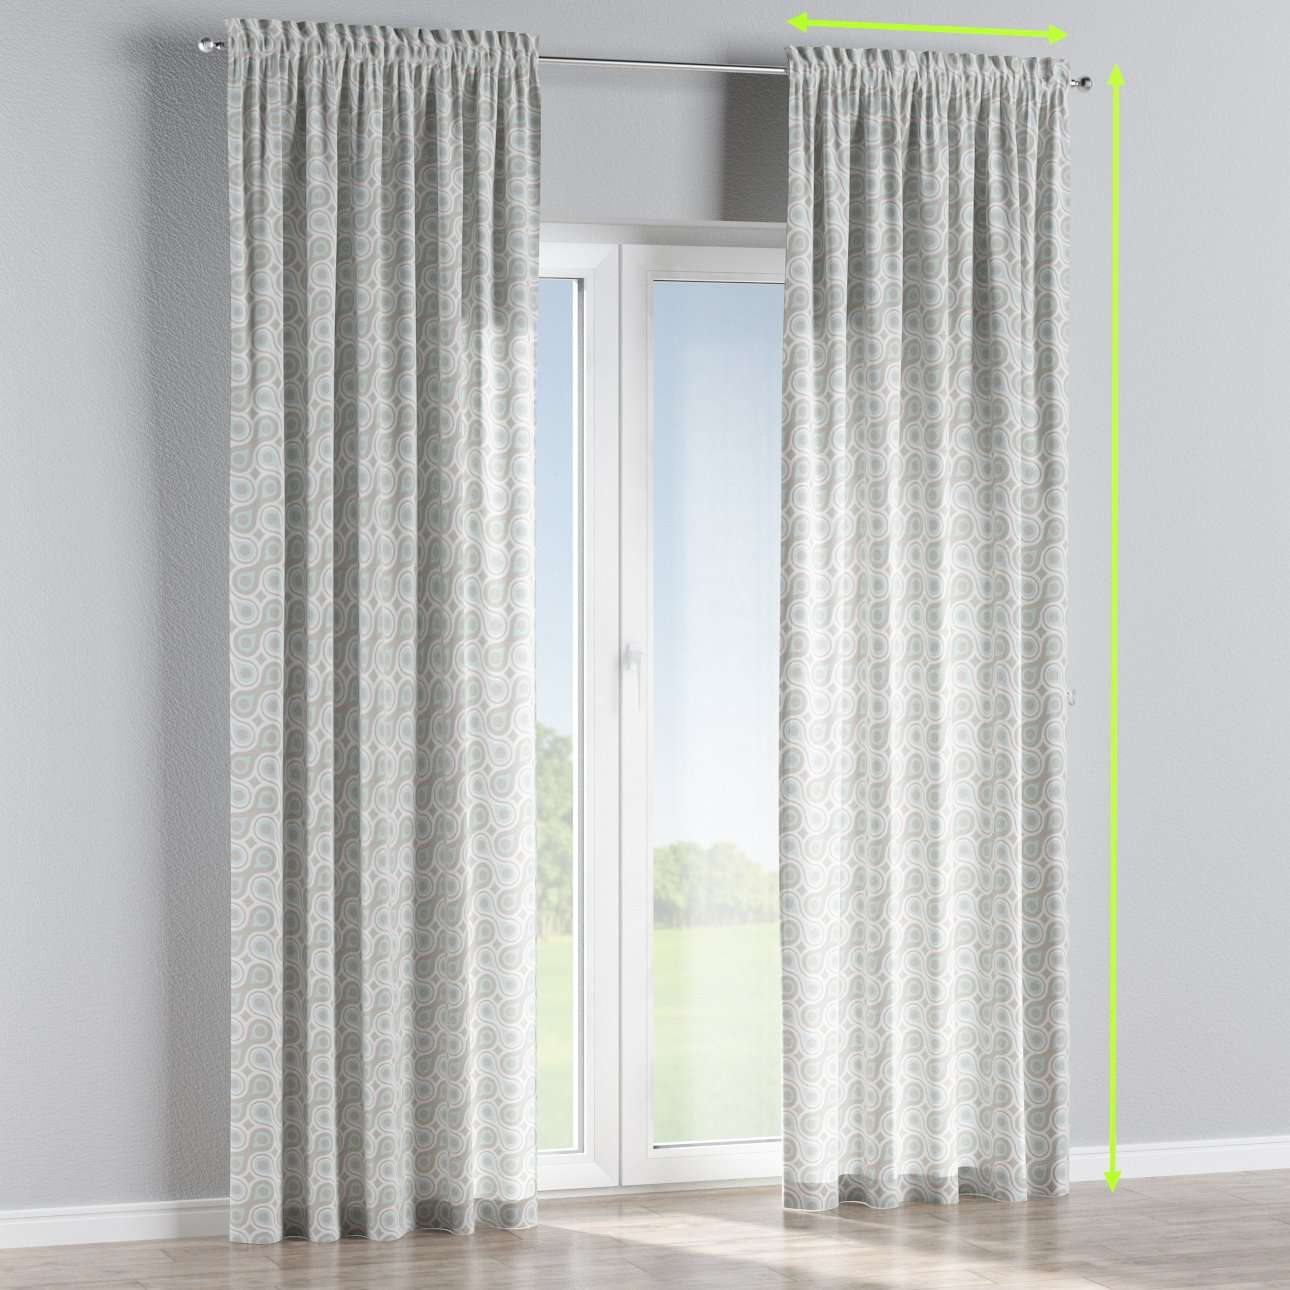 Slot and frill lined curtains in collection Flowers, fabric: 311-13